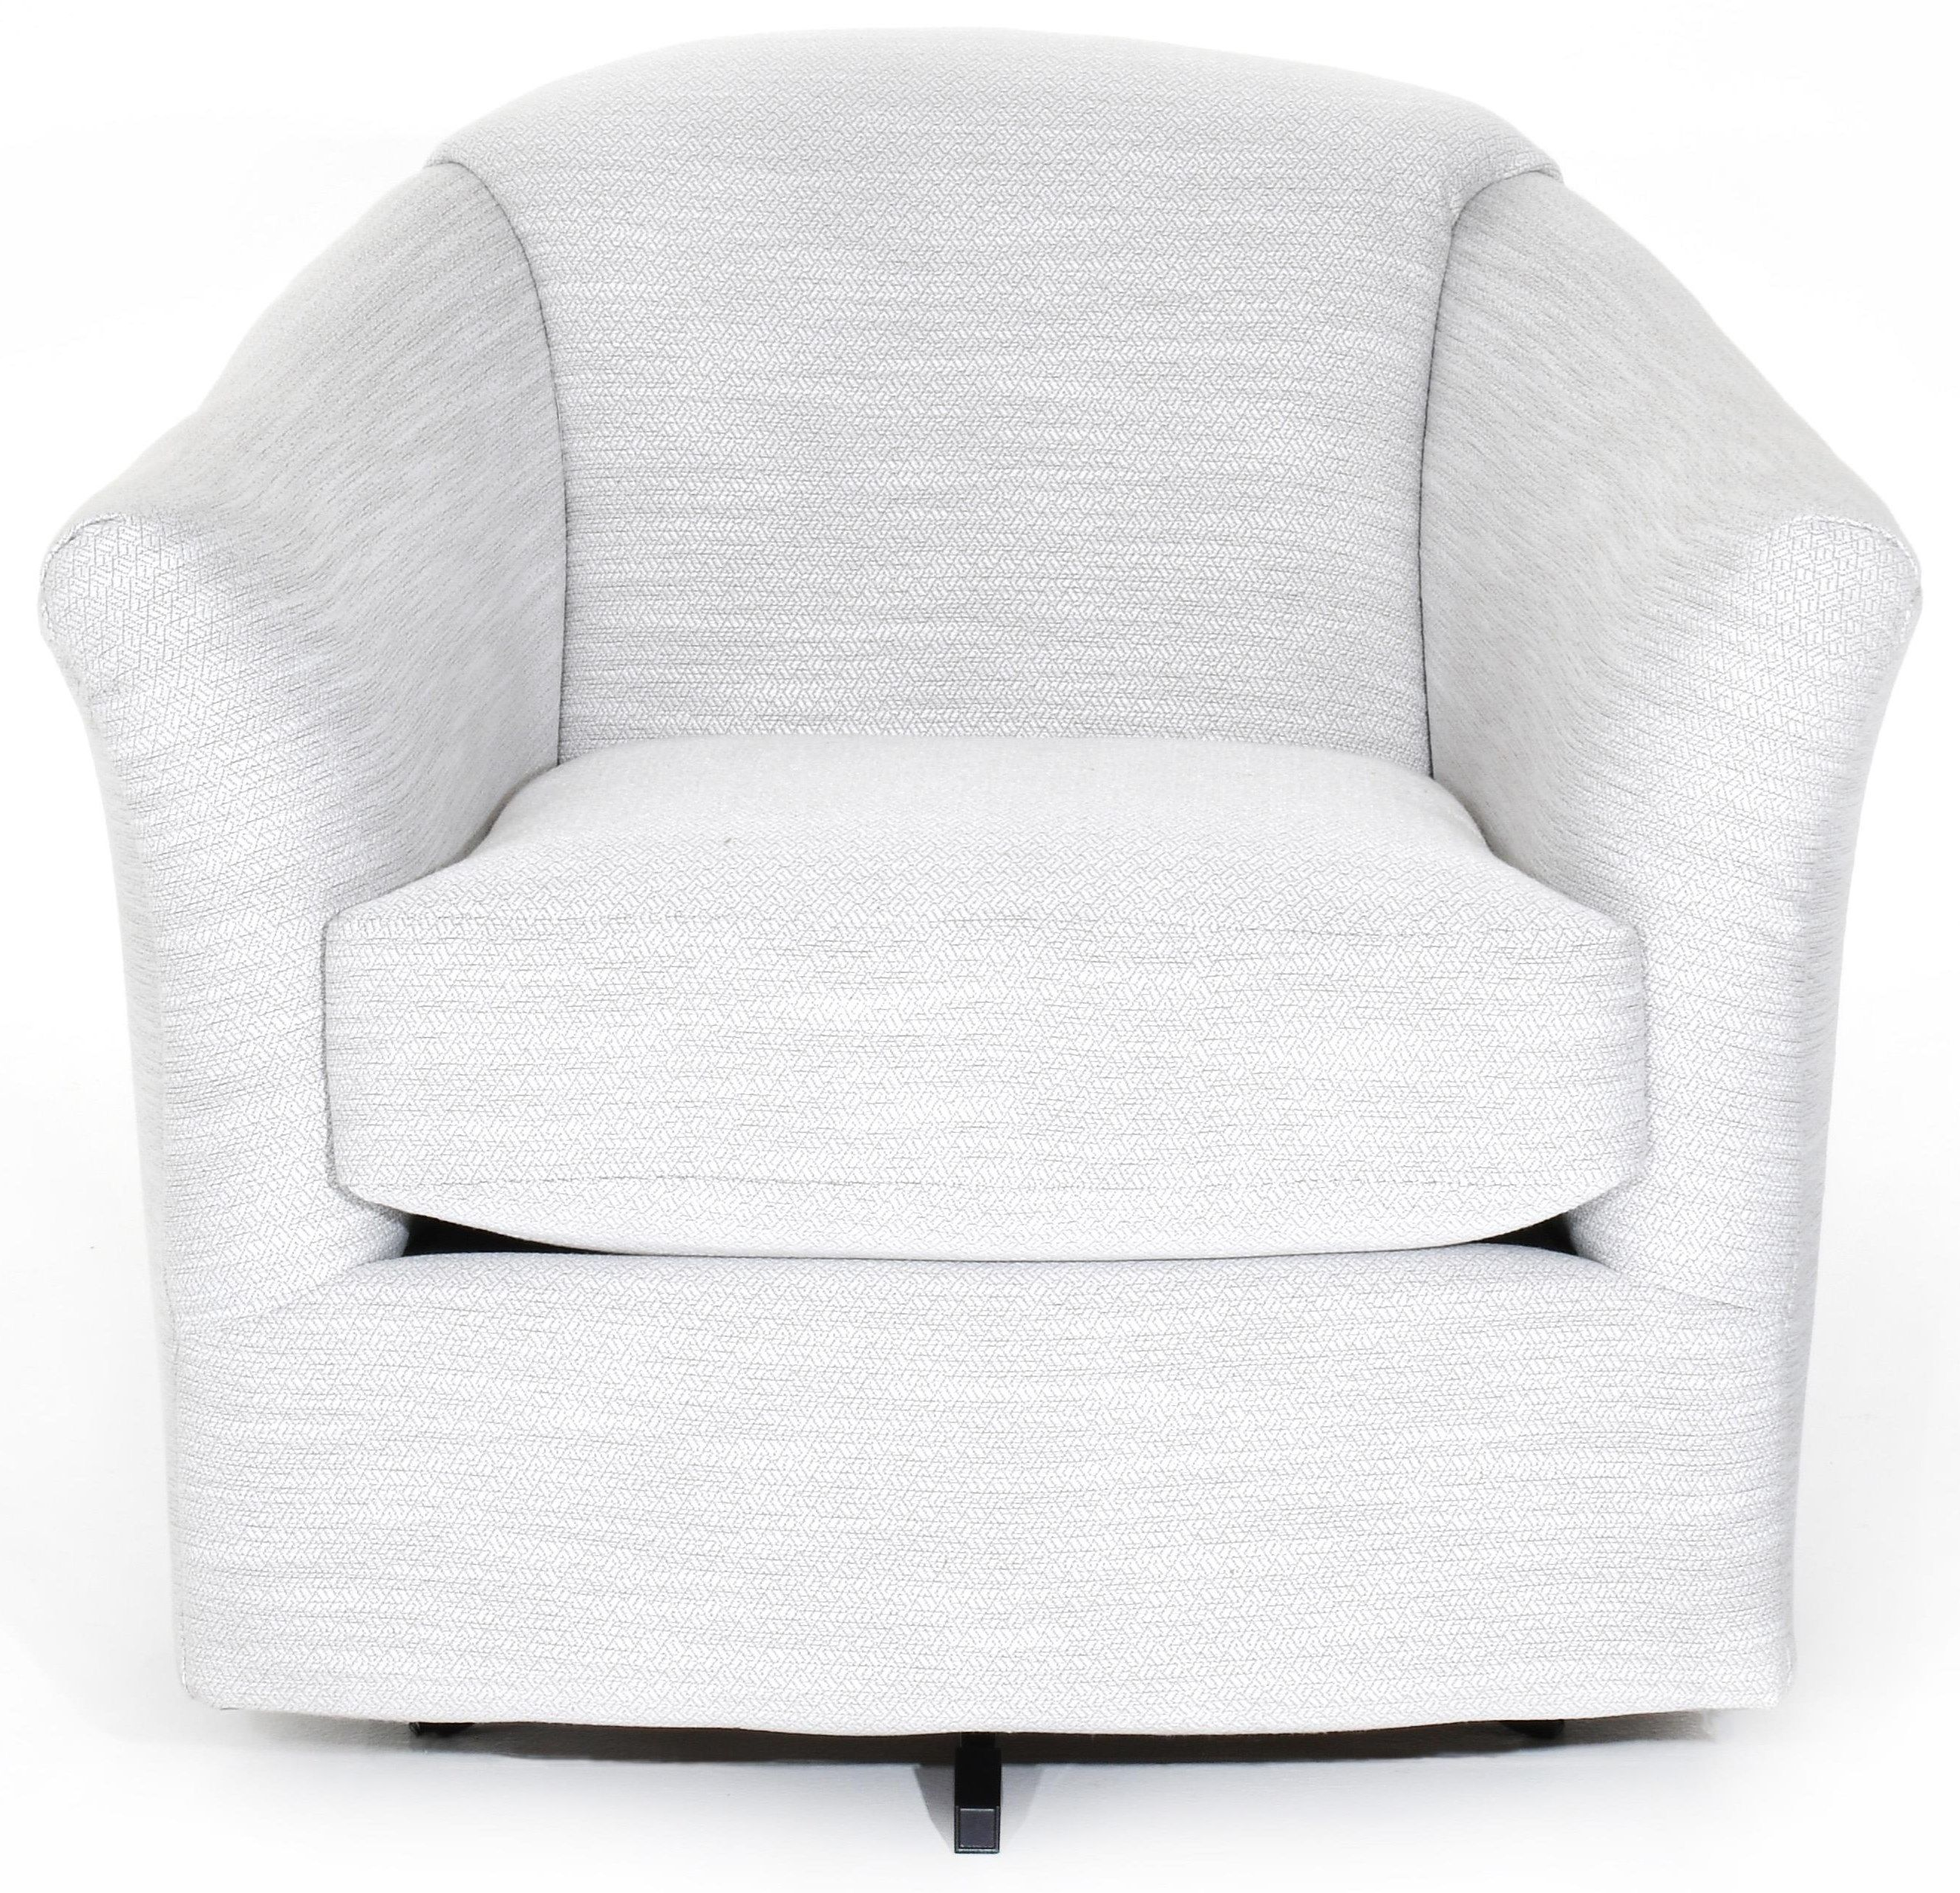 Cornet Accent Chair Swivel And Glide: Swivel Glide Chairs Darby Swivel Chair By Best Home